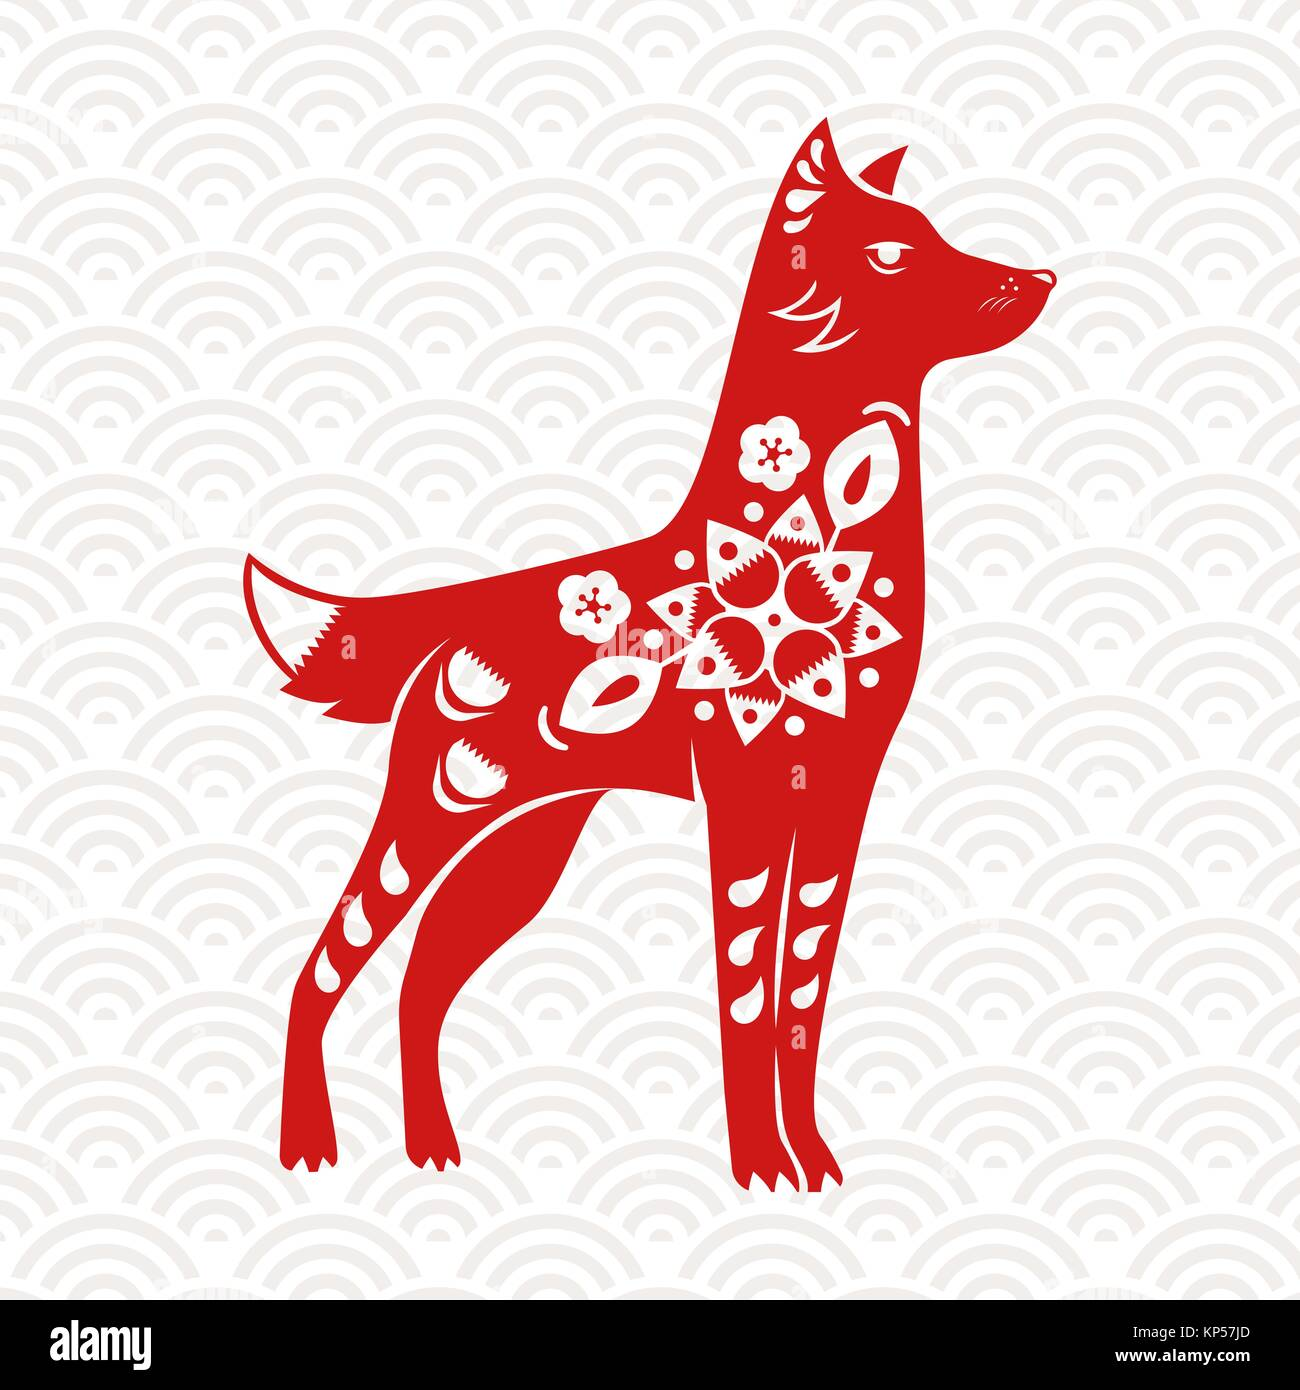 Chinese New Year 2018 Illustration Traditional Paper Cut Style Dog With Asian Floral Decoration And Shapes EPS10 Vector